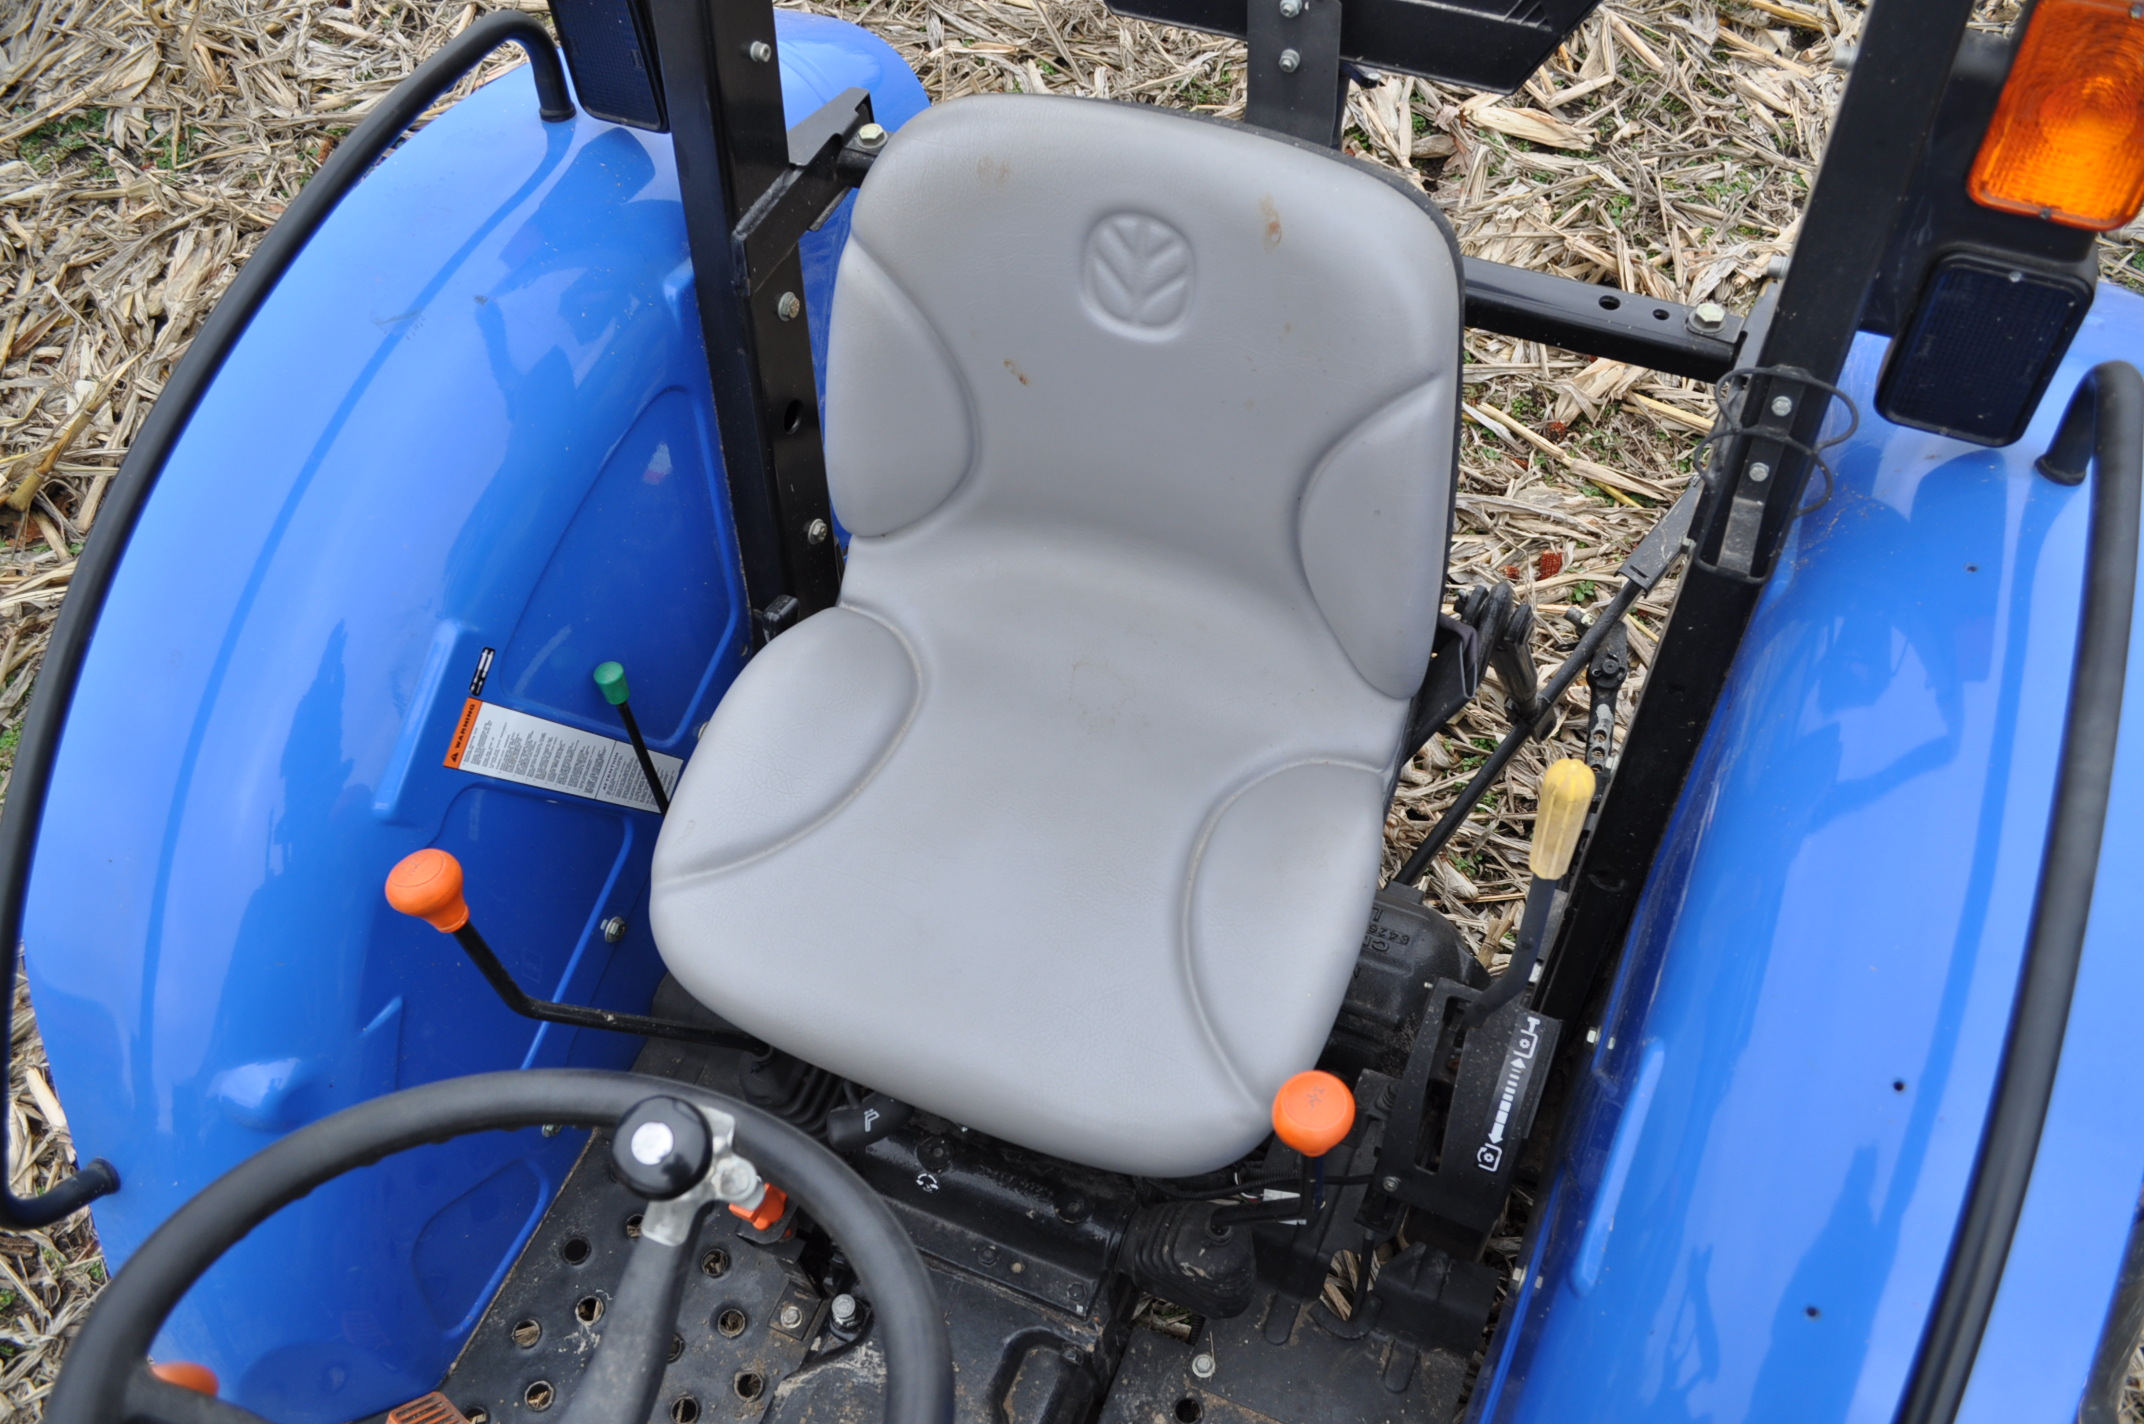 New Holland Workmaster 45 tractor, front wts, 12.4/11-28 rear, 6.00-16 front, shuttle shift, diesel, - Image 12 of 14